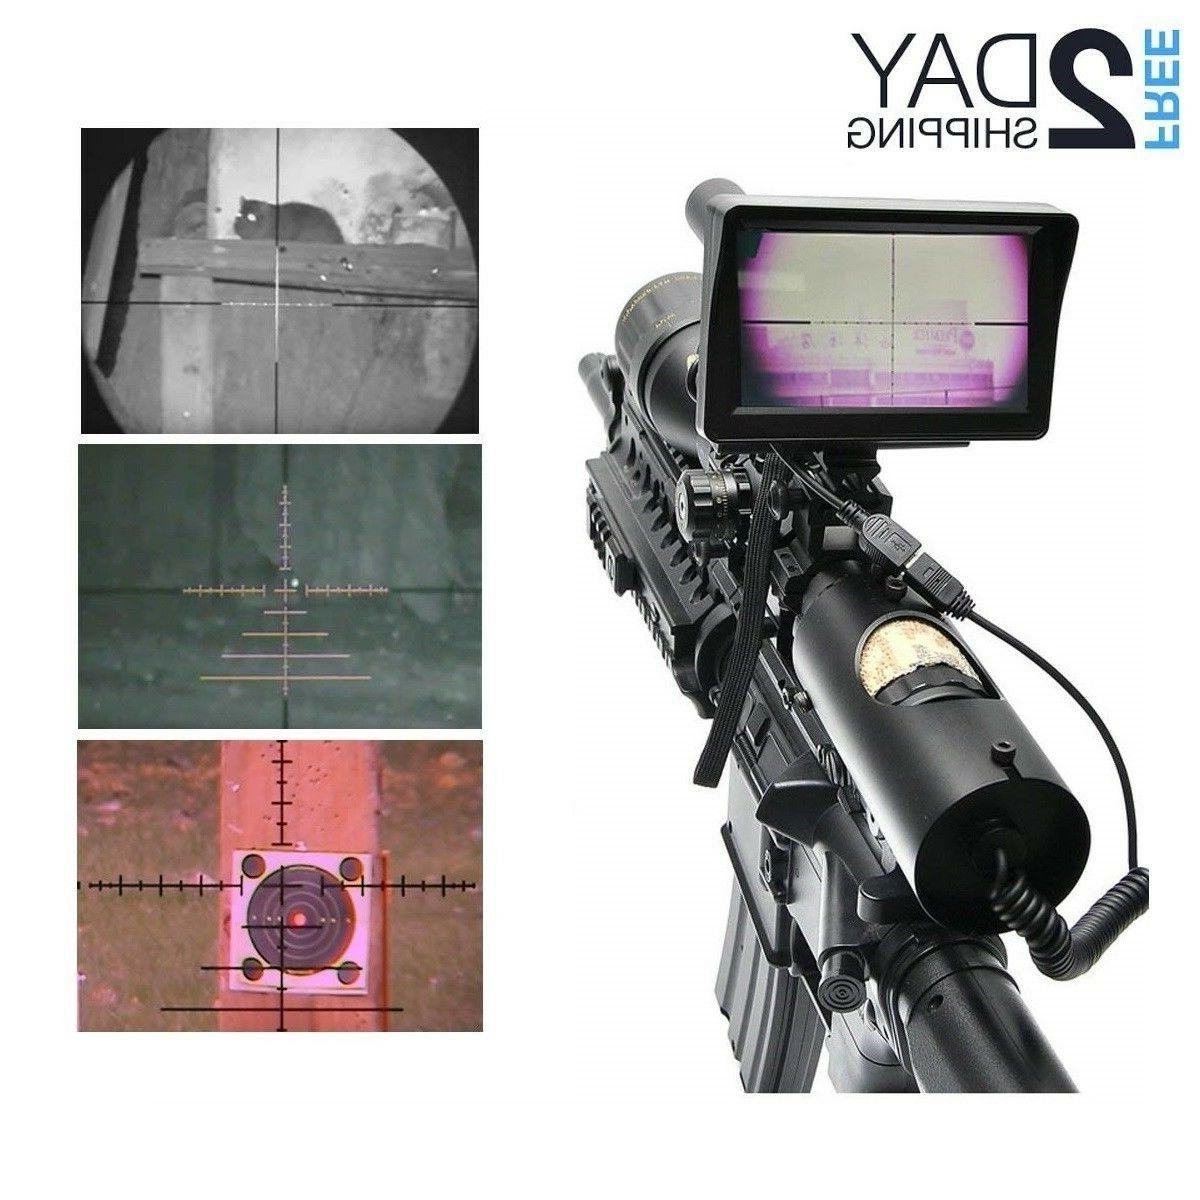 digital night vision scope for rifle hunting